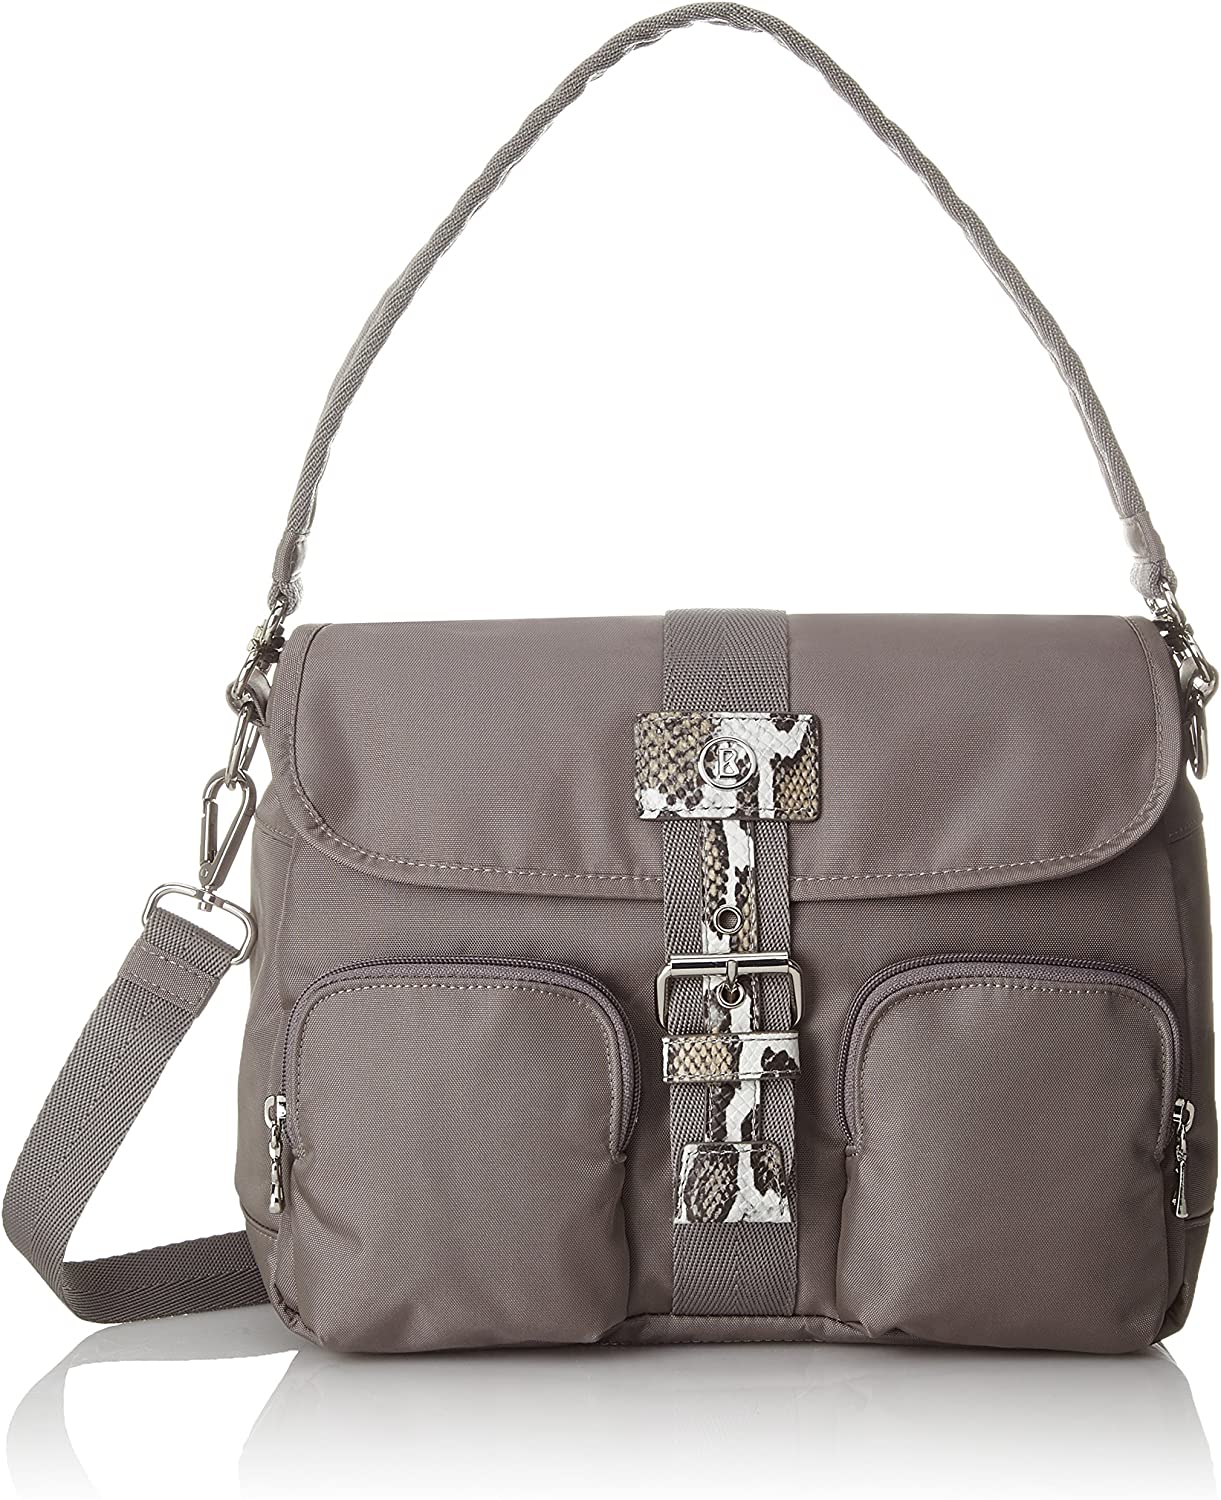 Bogner Women's Eilis Shoulder Bag